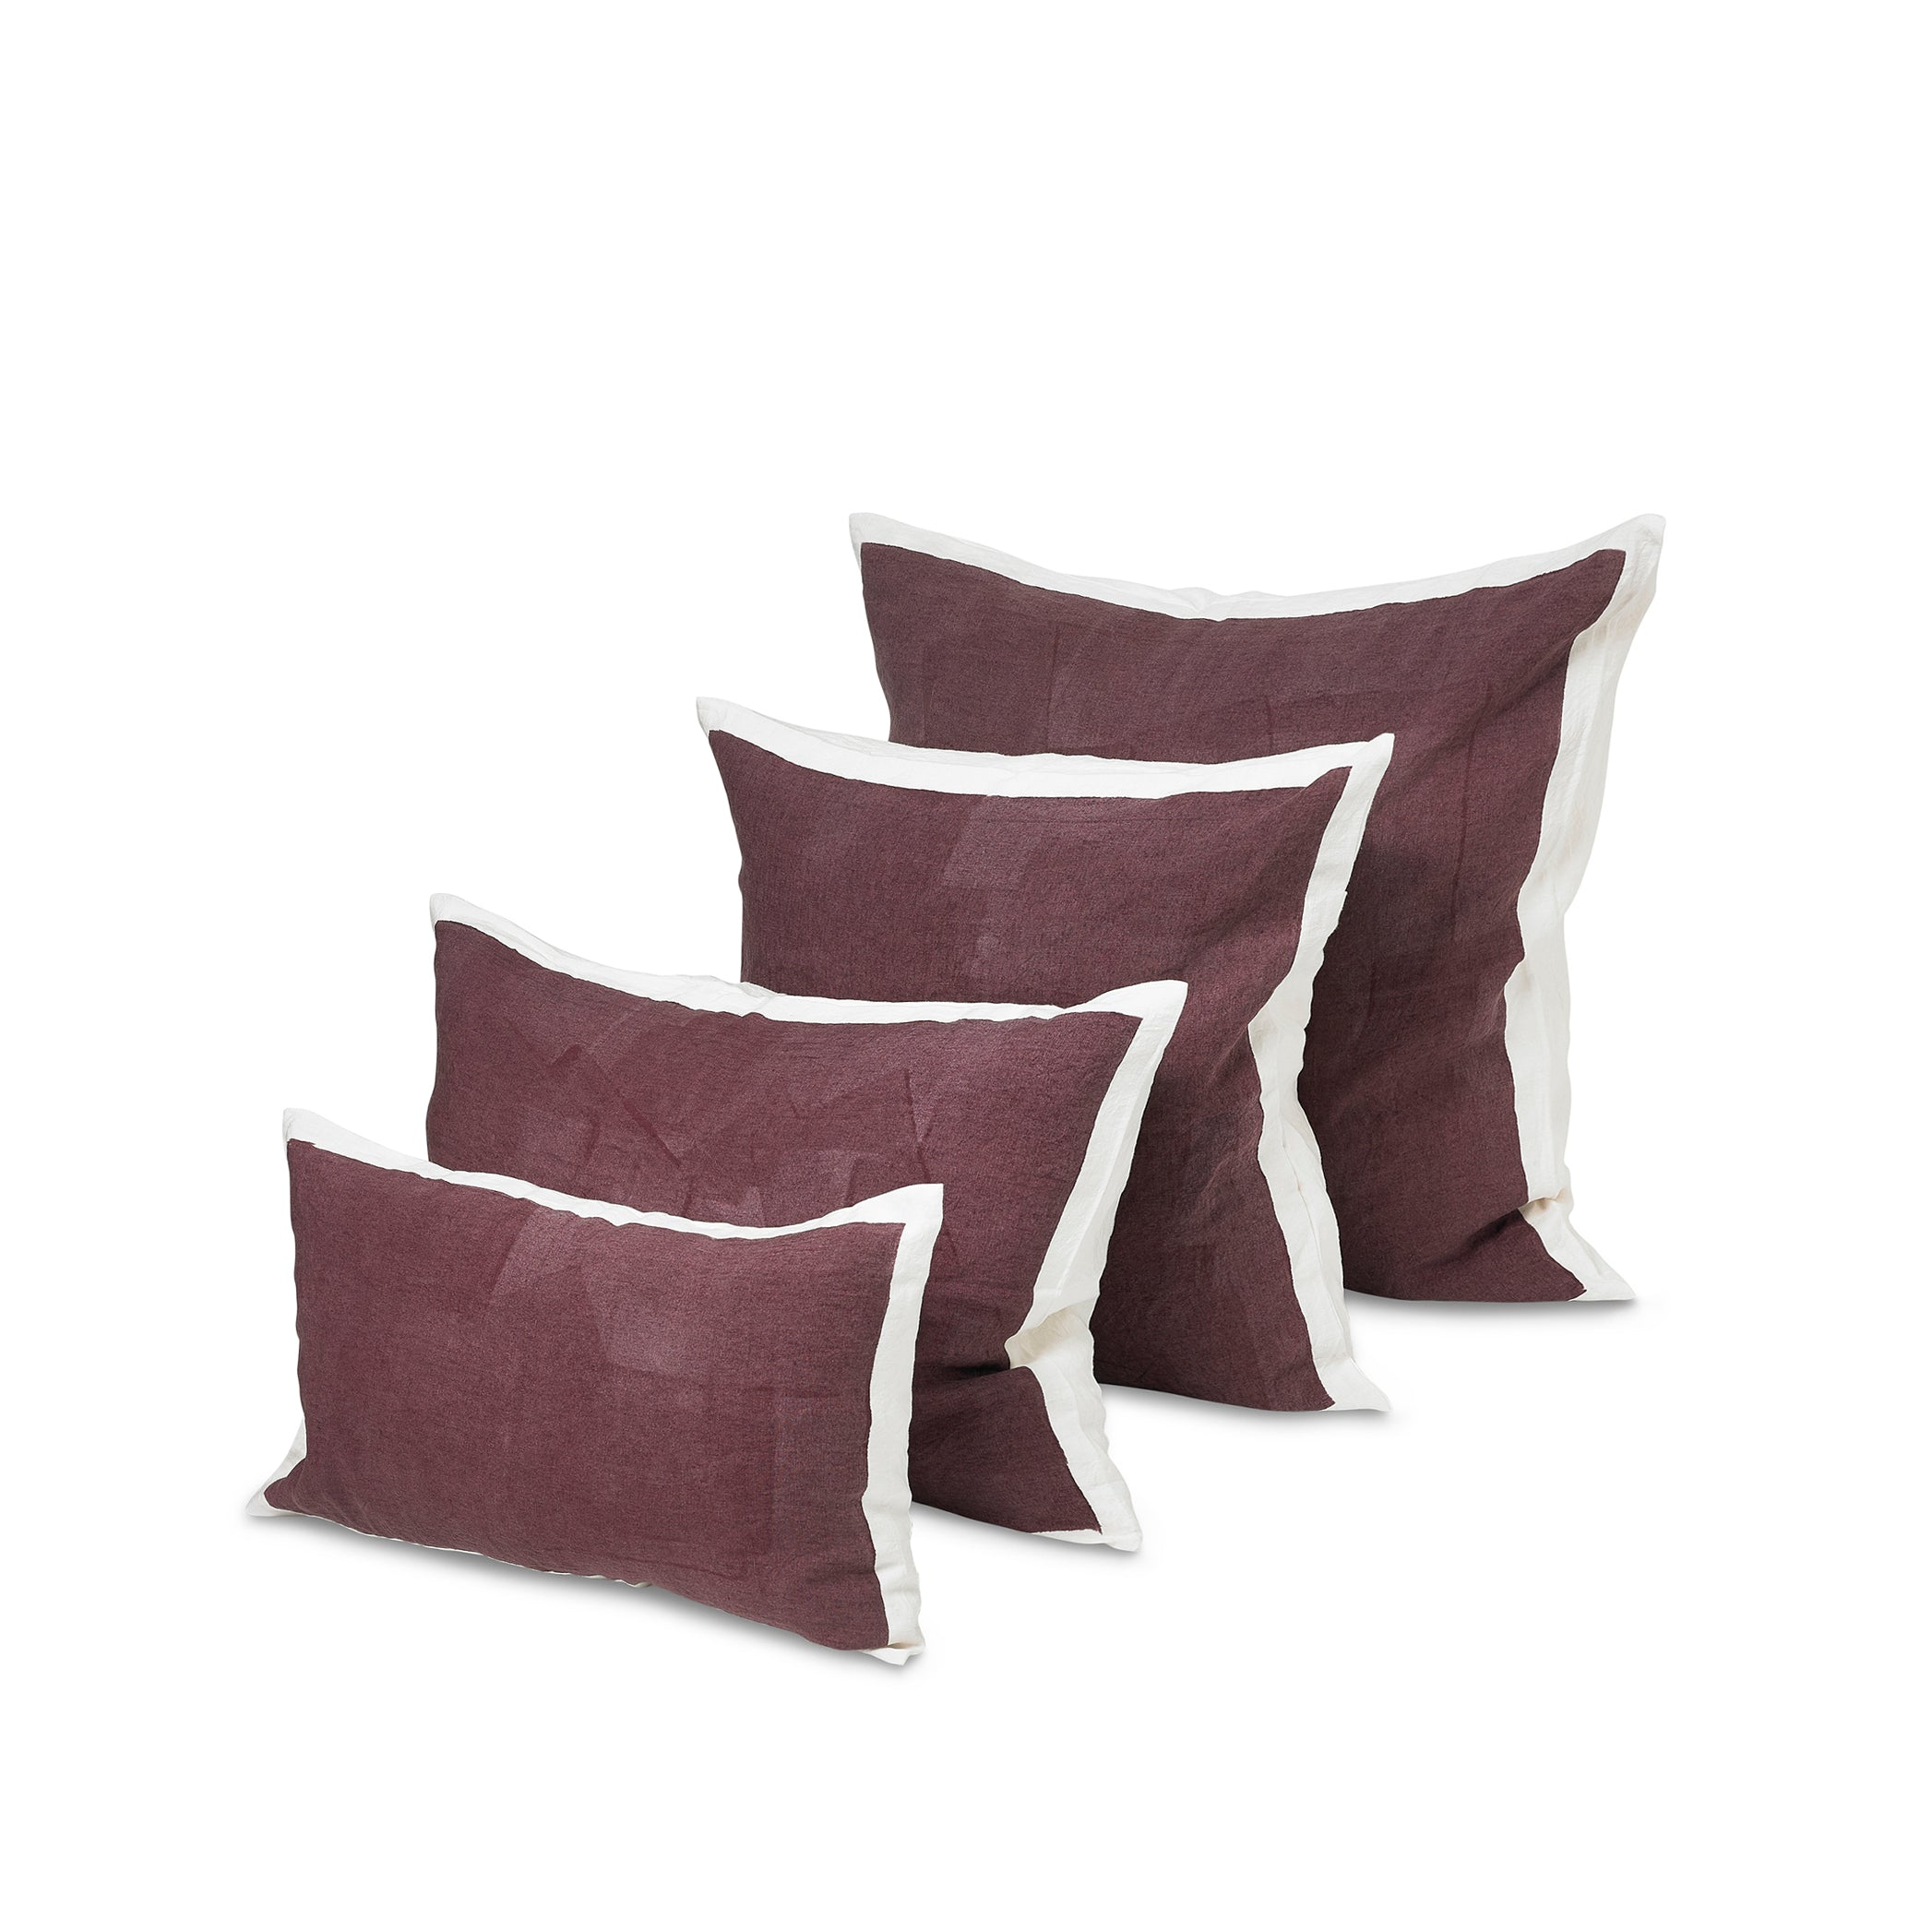 Hand Painted Linen Cushion in Grape, 60cm x 60cm